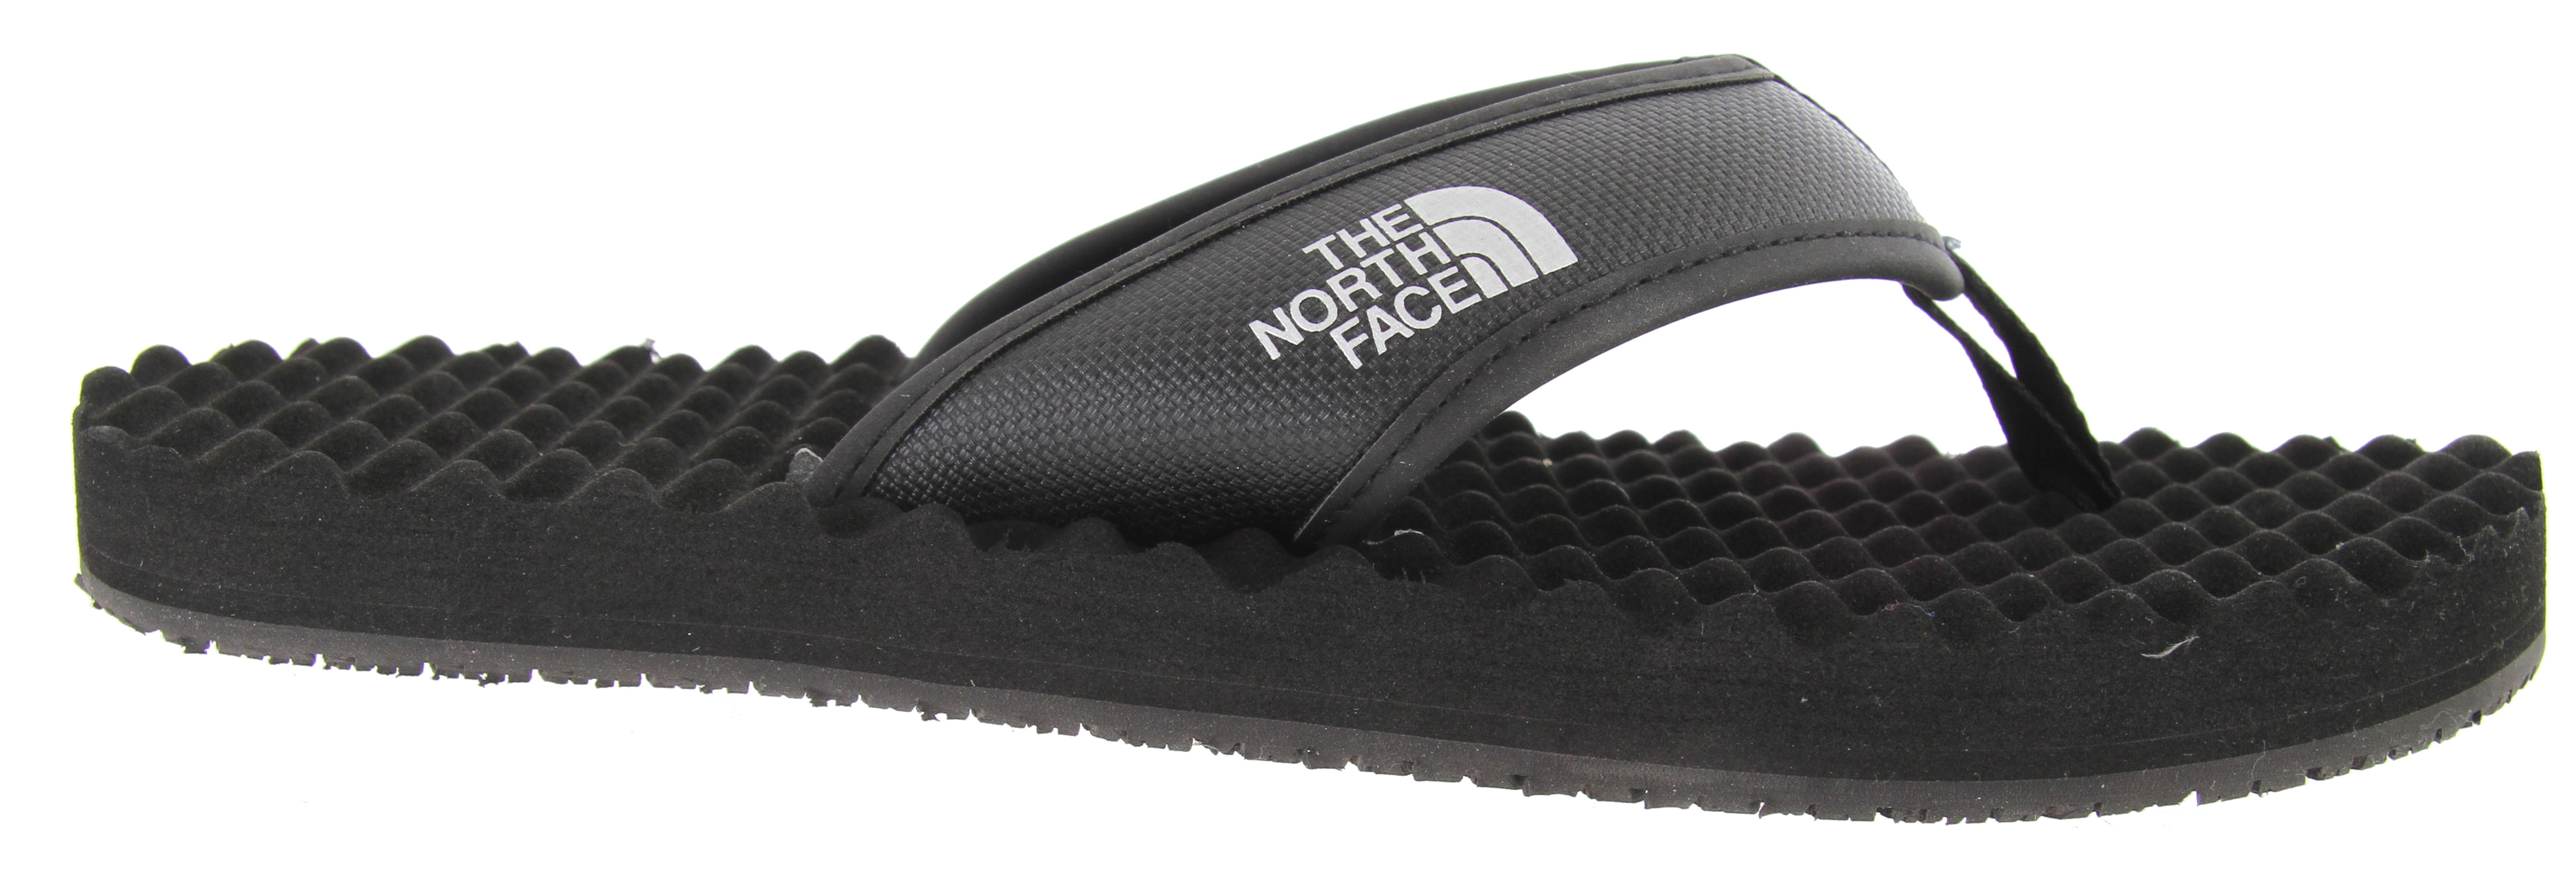 Camp and Hike Classic, rugged style inspired by their hyper-durable expedition equipment, The North Face Base Camp Flip Flop supportive sandal is comfortable and resilient for loads of use.Key Features of The North Face Base Camp Flip Flop Sandals: PVC-free, PU-coated synthetic strap with soft PU binding and jersey lining upper Extra-cushy, egg-crate-inspired EVA footbed with anatomical arch support Rubber outsole - $20.95